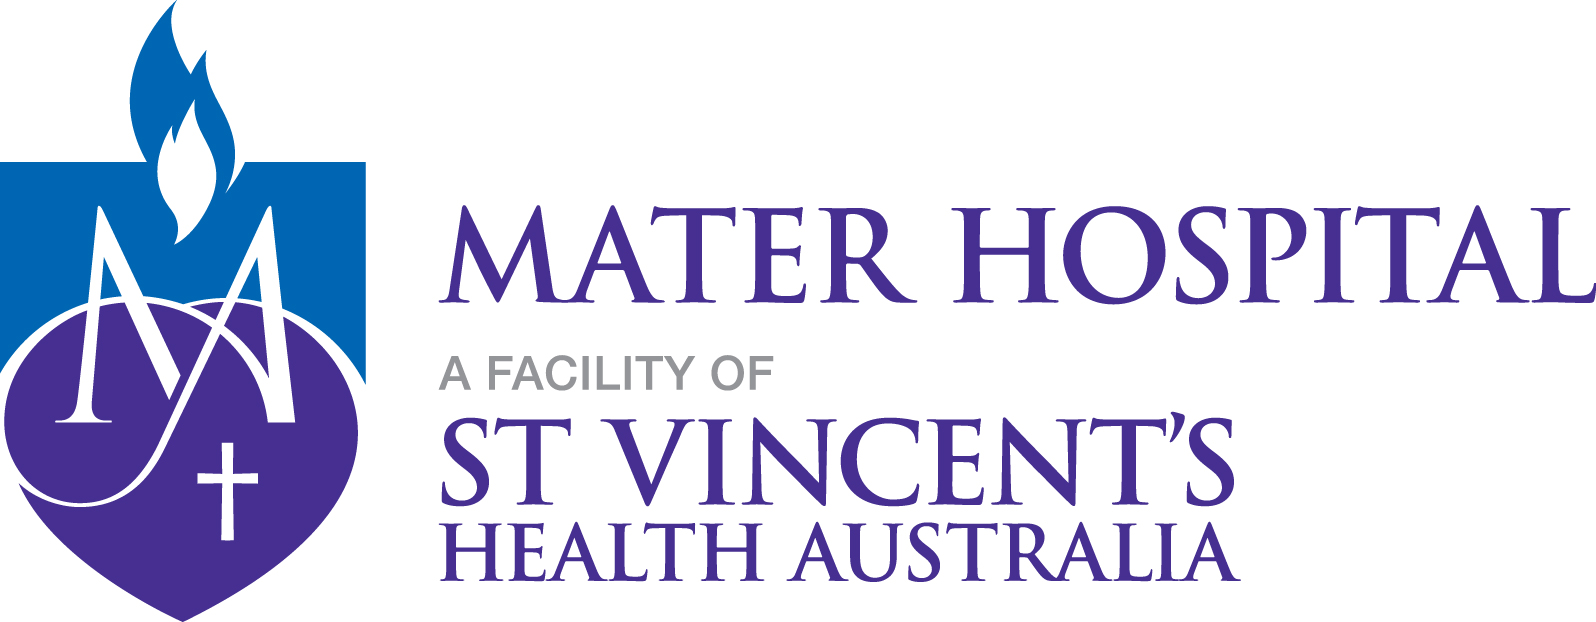 the-mater-hospital, Crows Nest